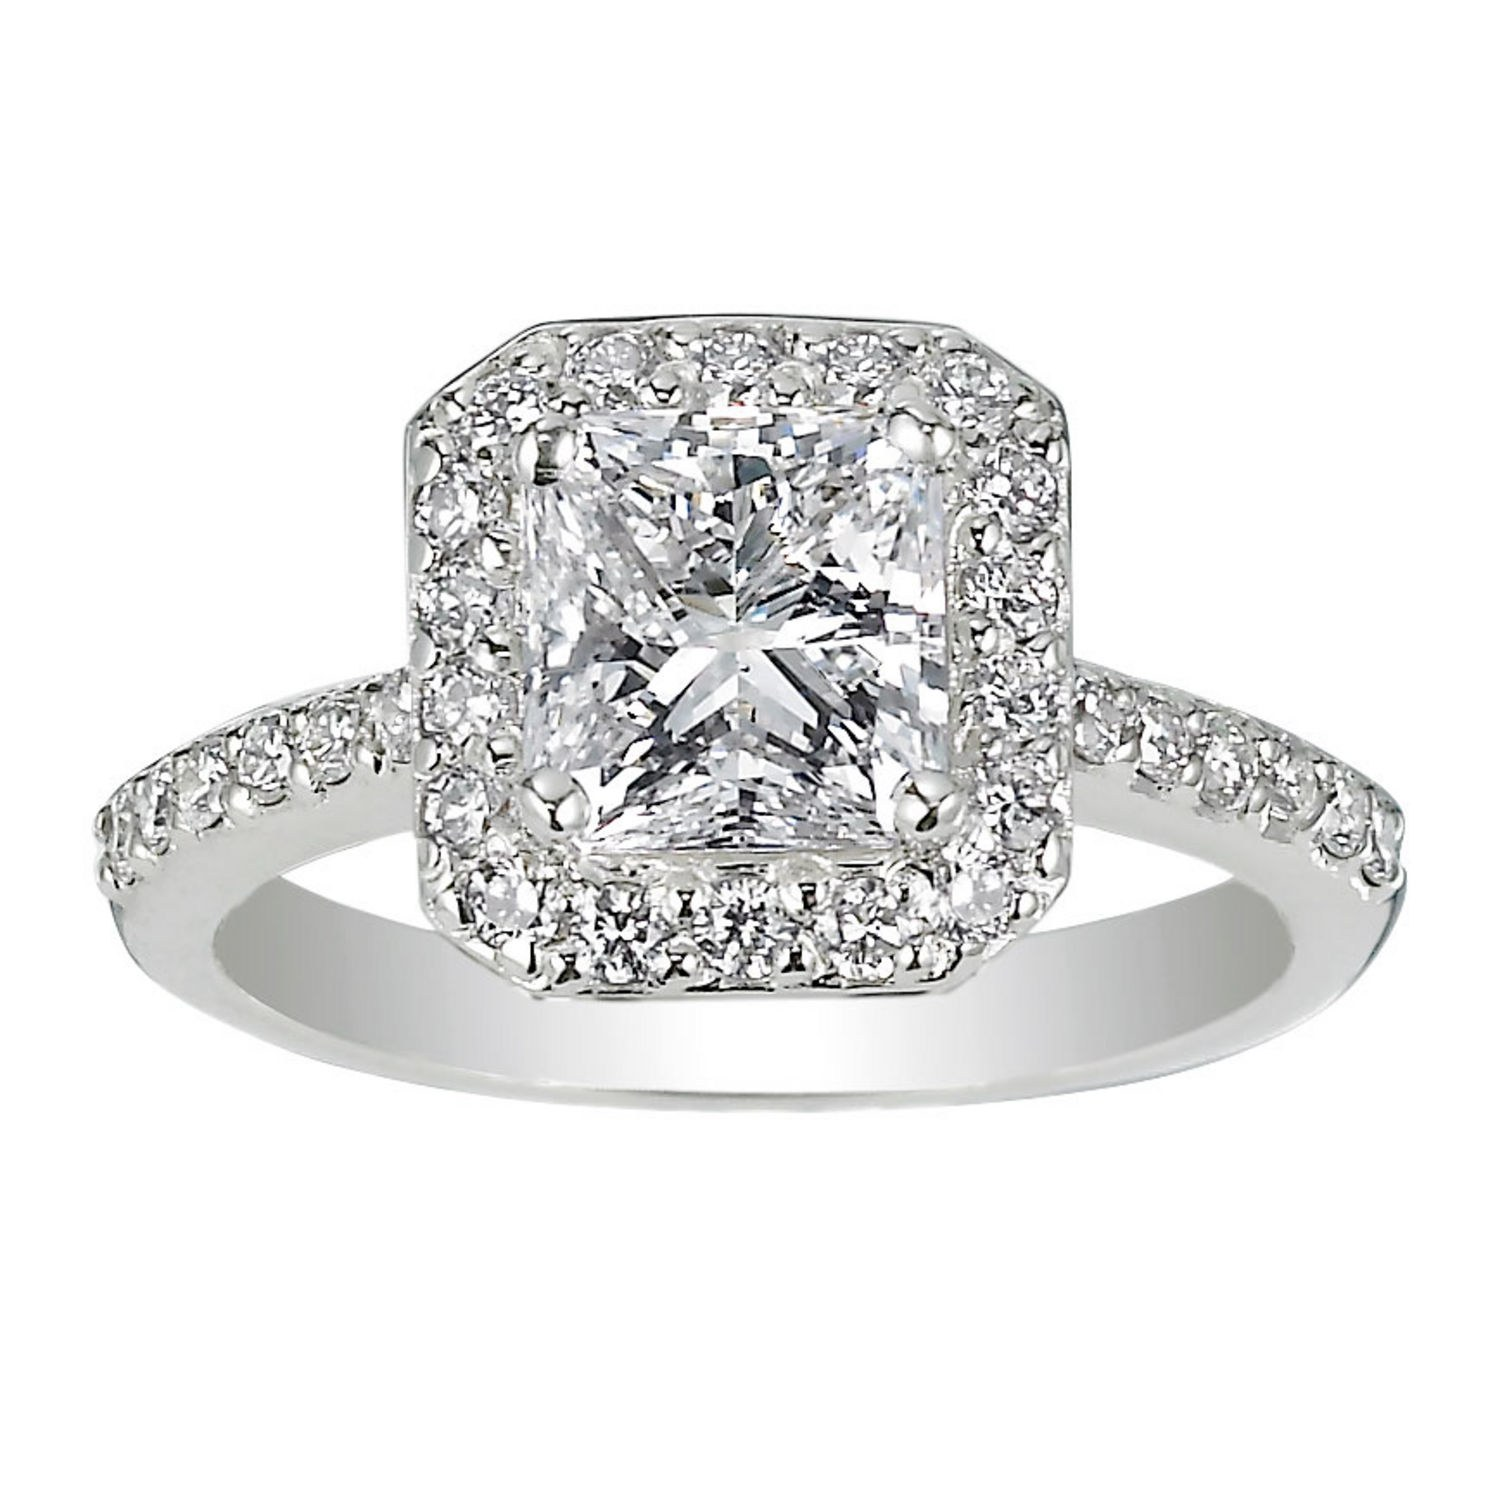 wedding engagement rings 62 diamond engagement rings under $5,000 | glamour vndgwua